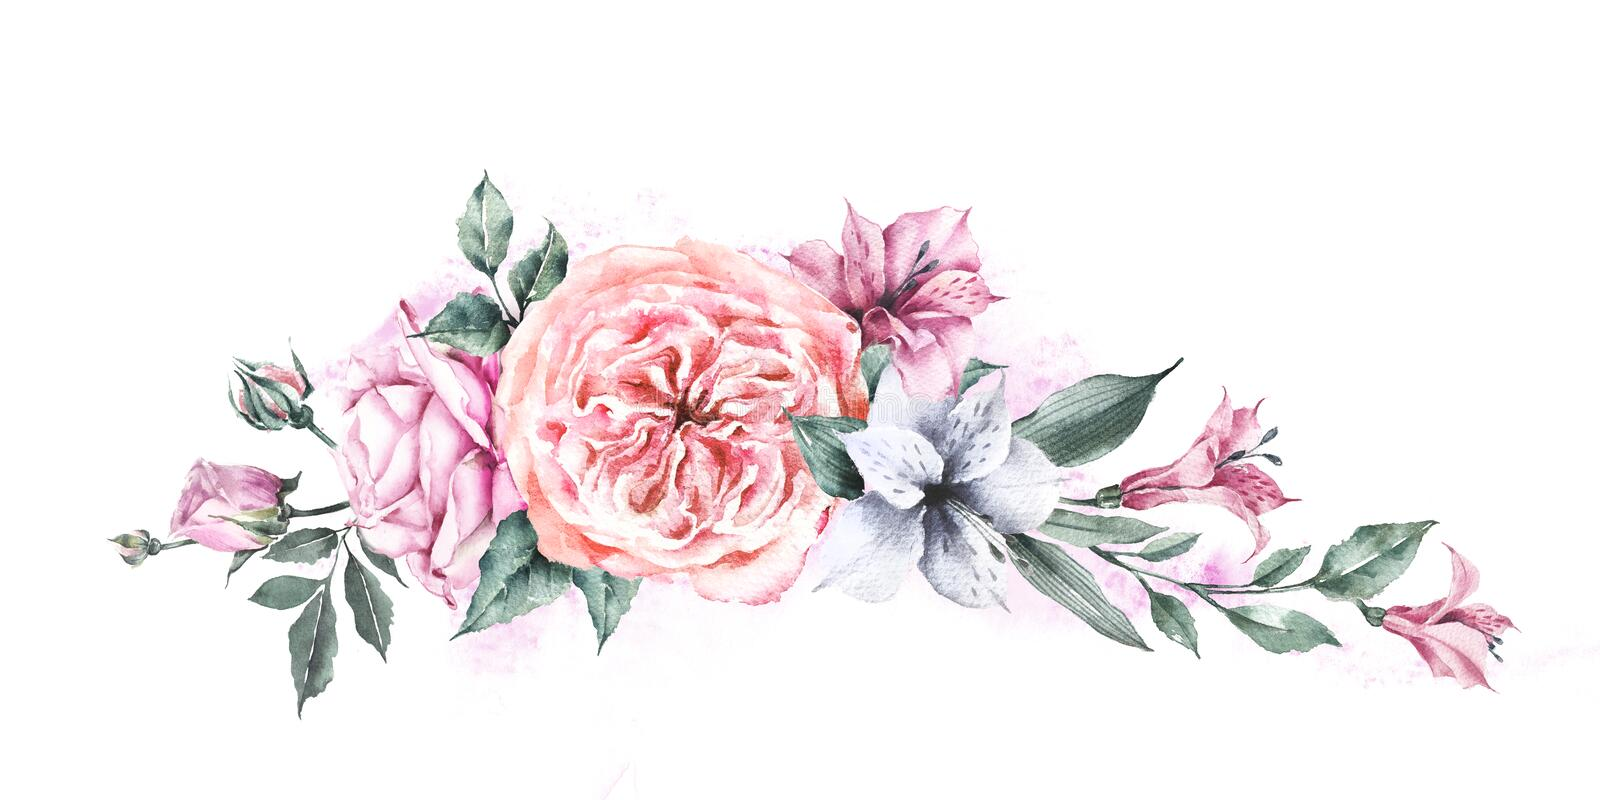 Floral Composition Of Roses And Alstroemeria Flowers In Pastel ...